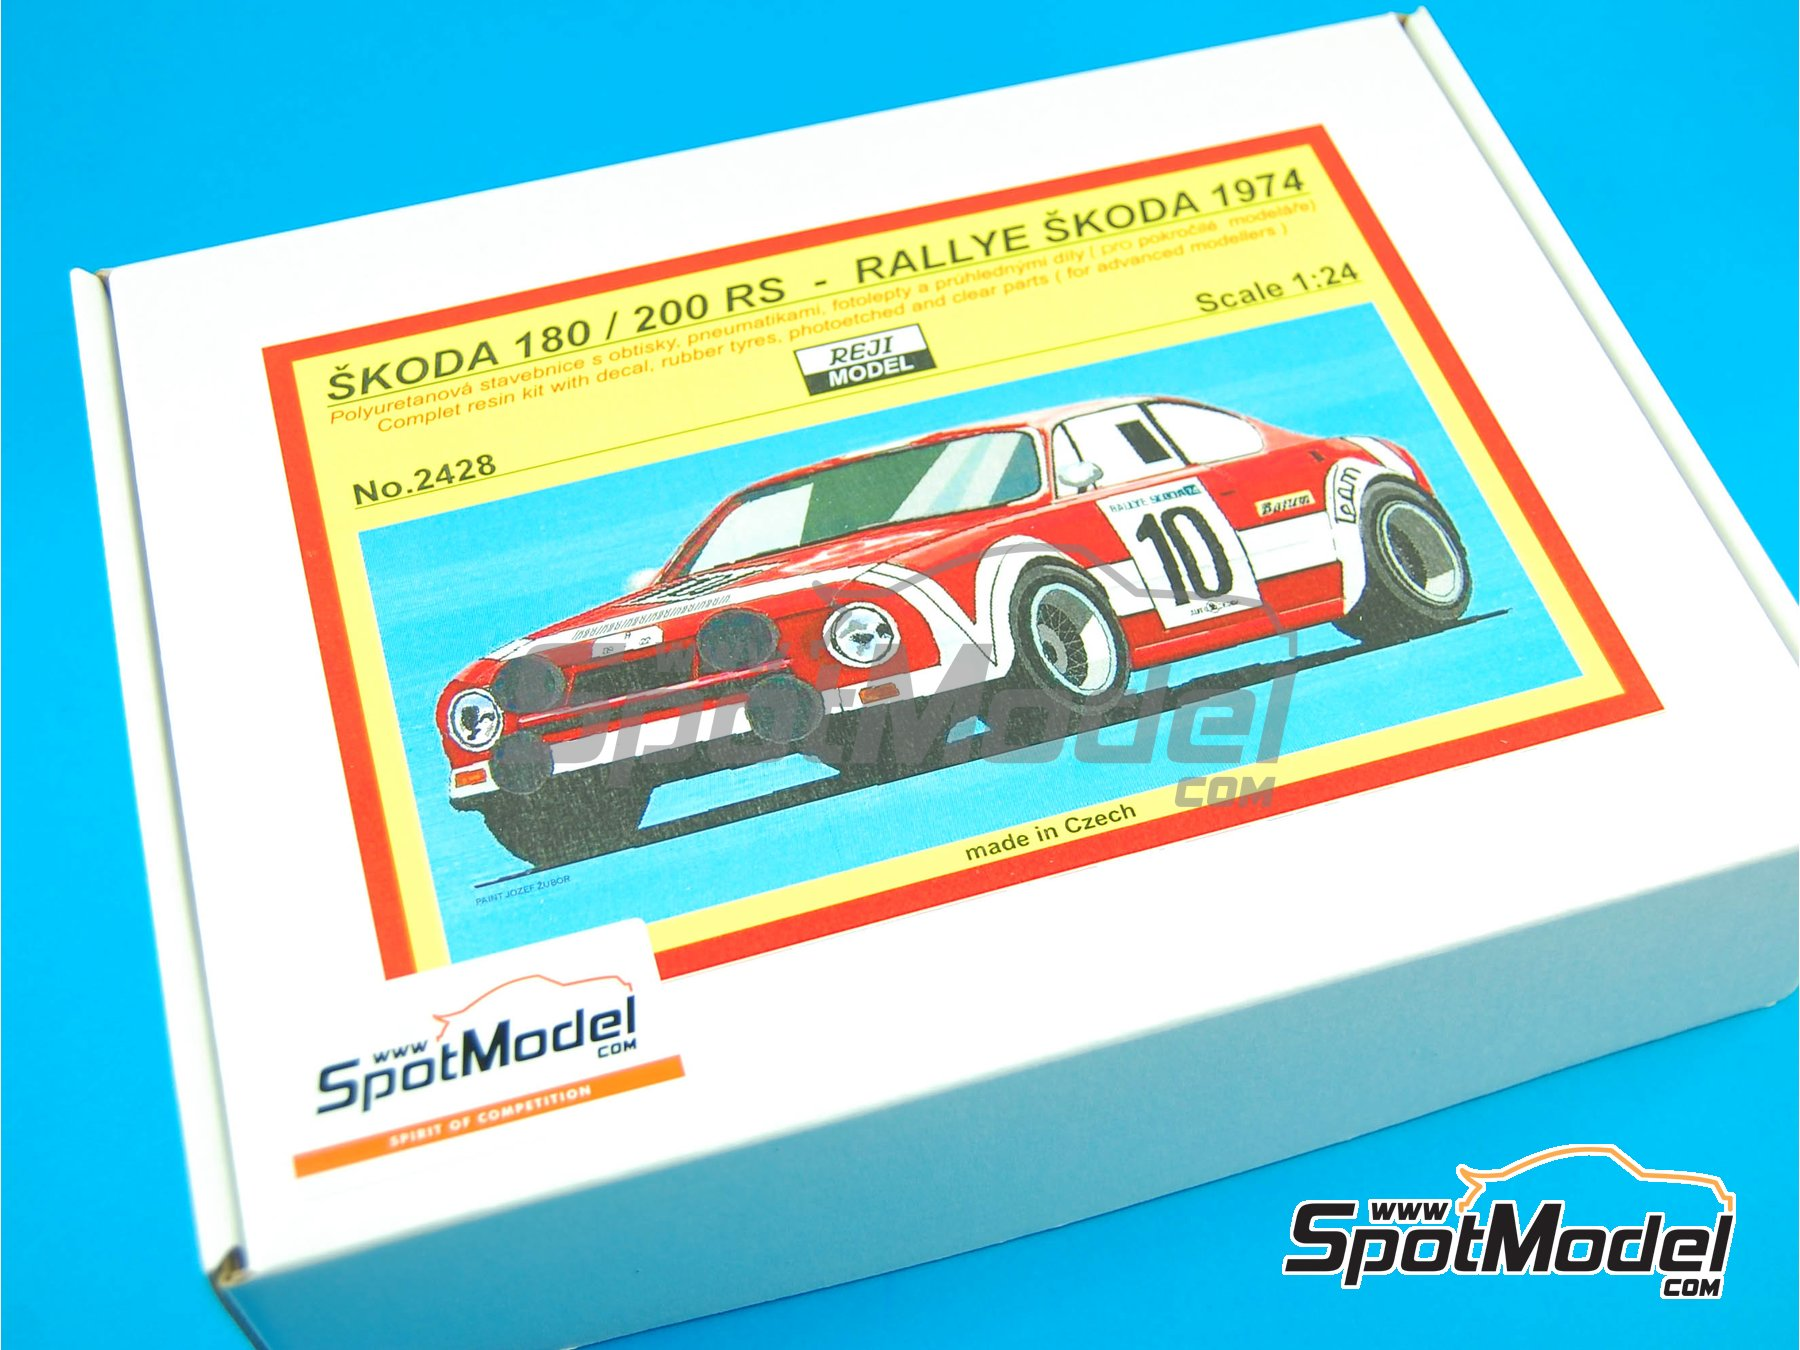 Image 1: Skoda 180 / 200 RS - Rally Skoda 1974 | Car kit in 1/24 scale manufactured by Reji Model (ref. REJI-2428)